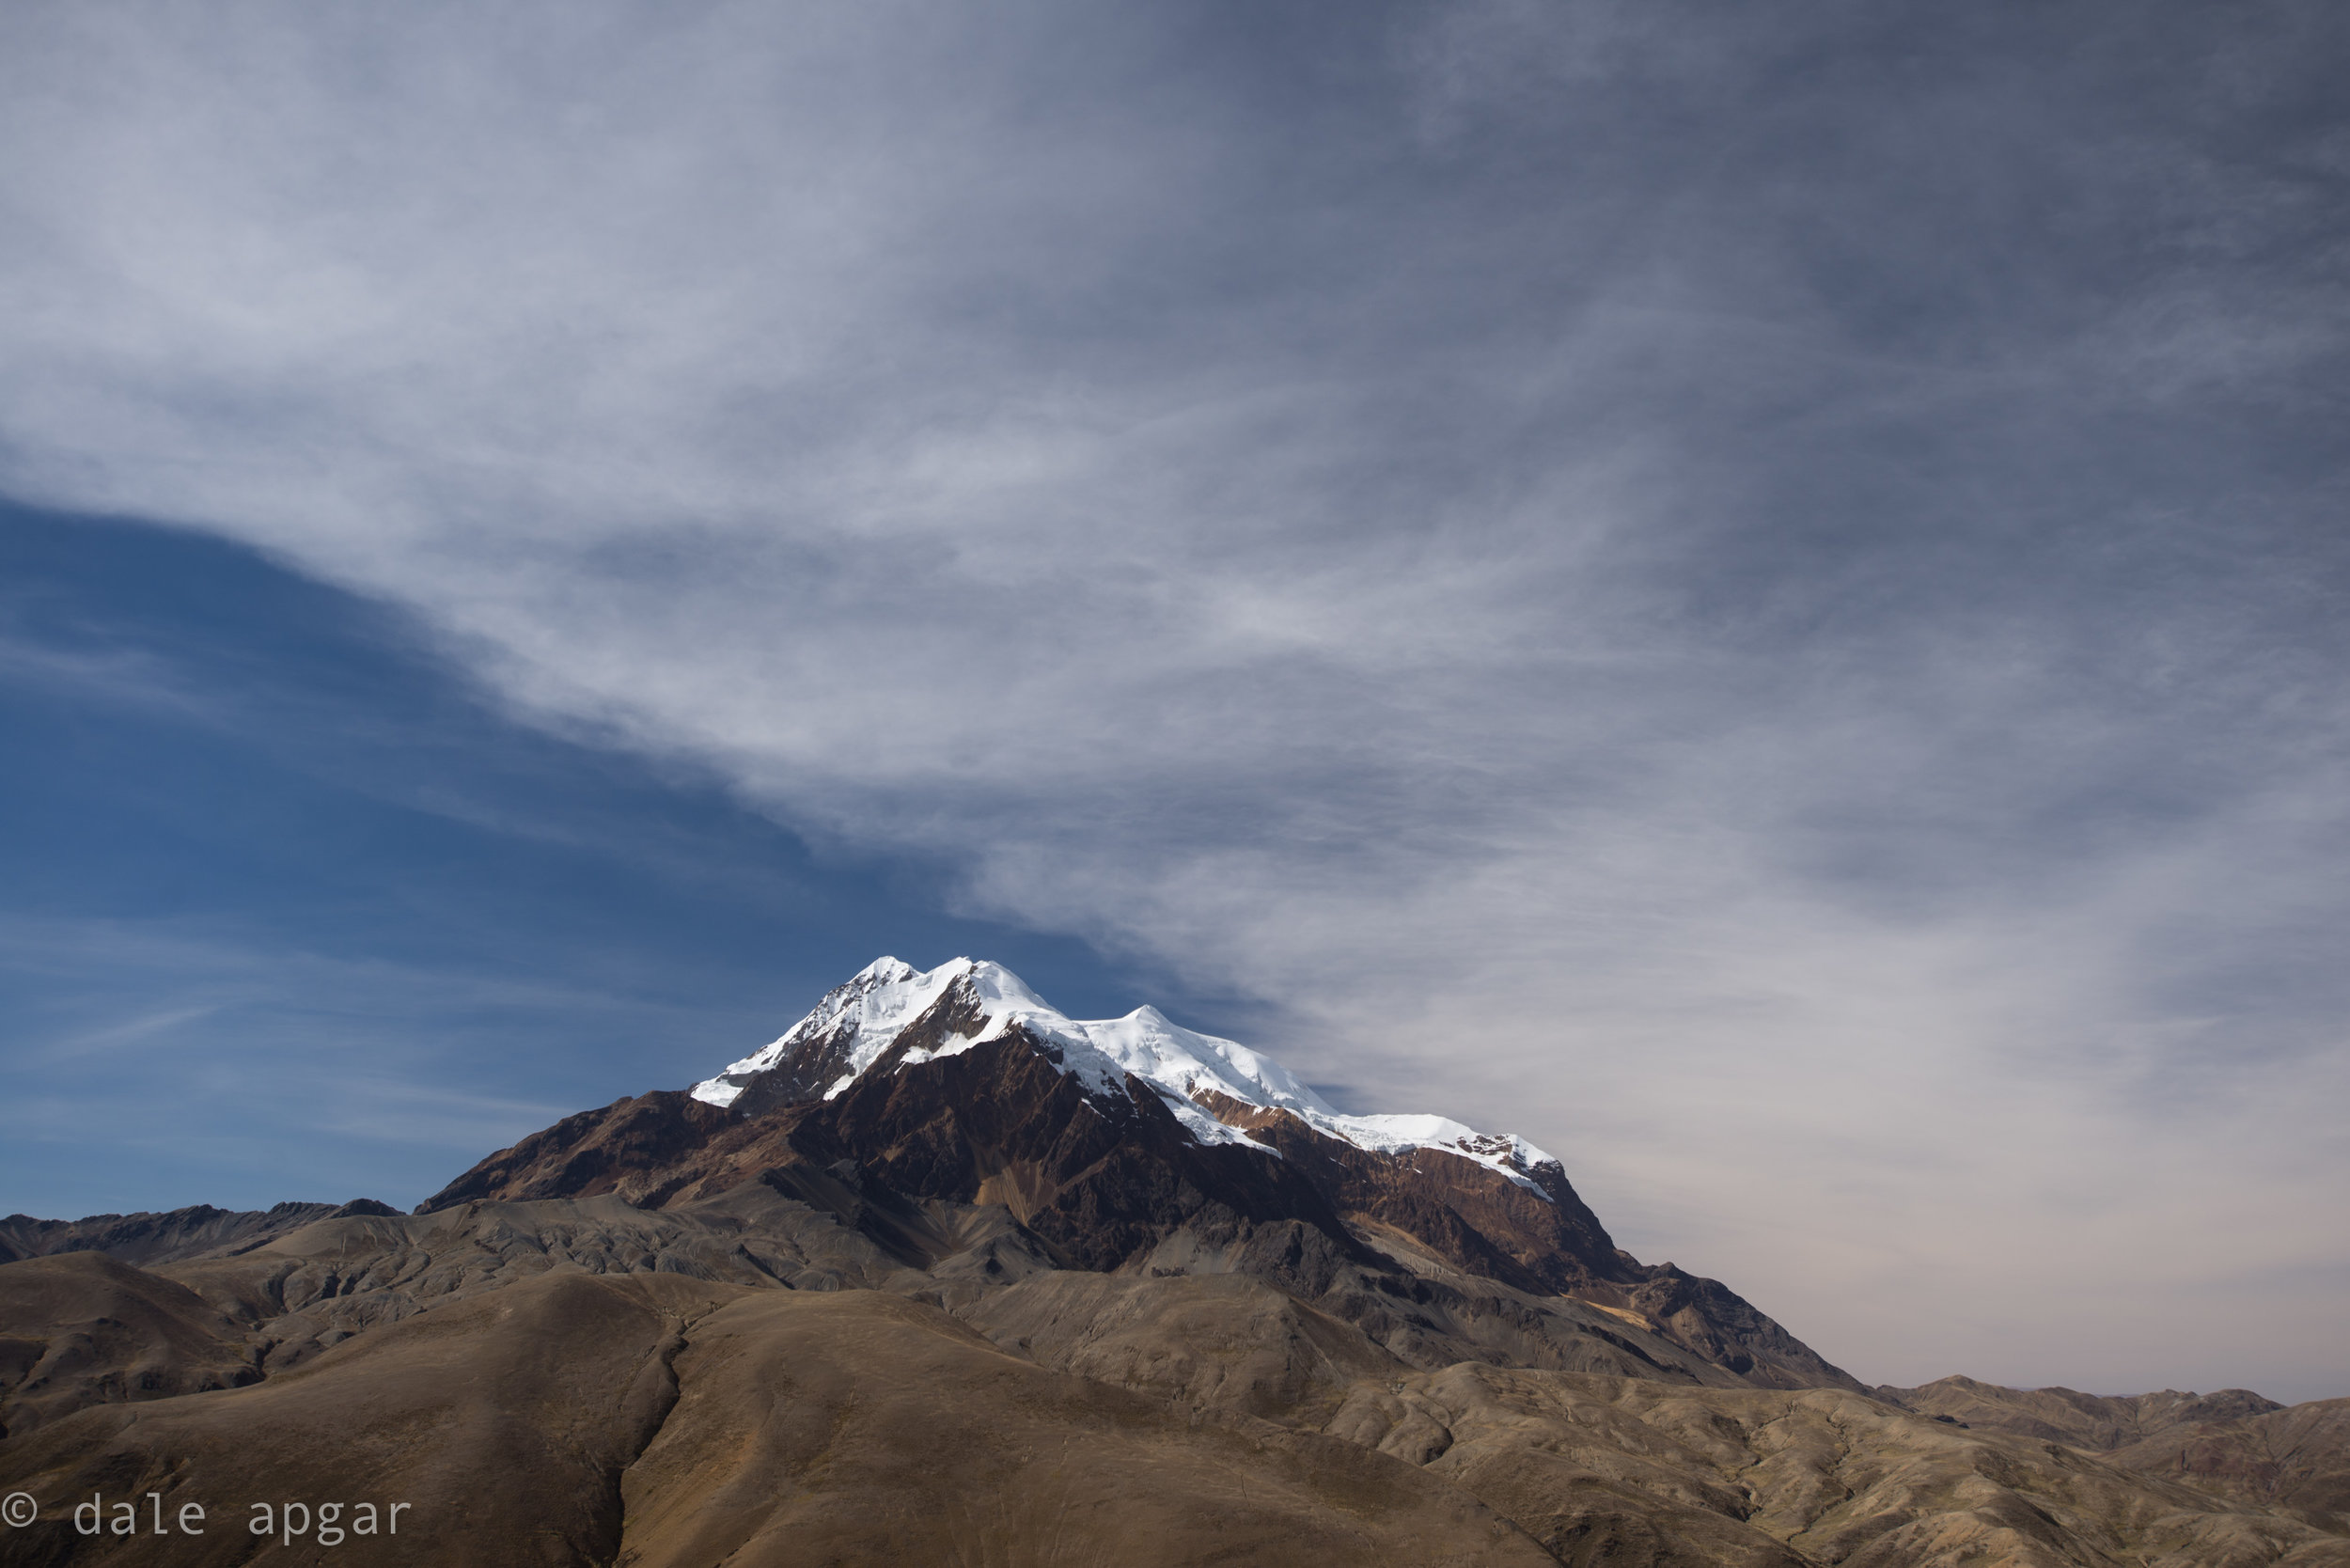 Approaching Illimani's trailhead from La Paz via some impressive backroads